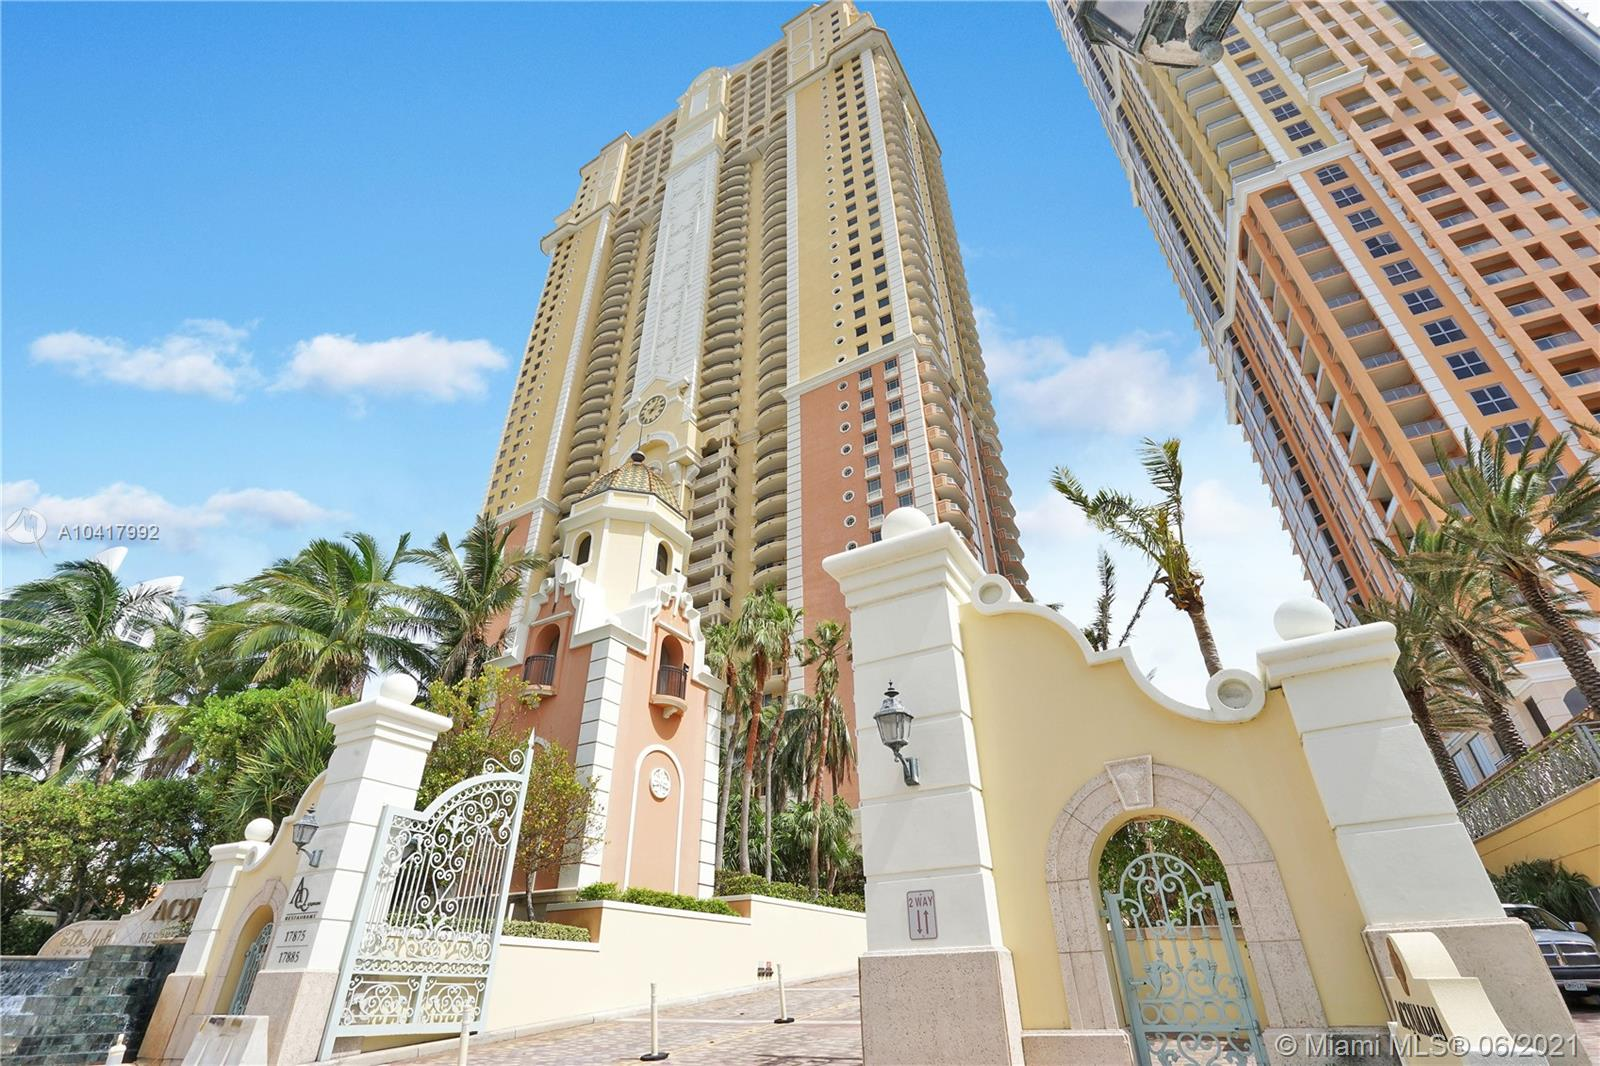 17875 Collins Ave 3605, Sunny Isles Beach, FL 33160